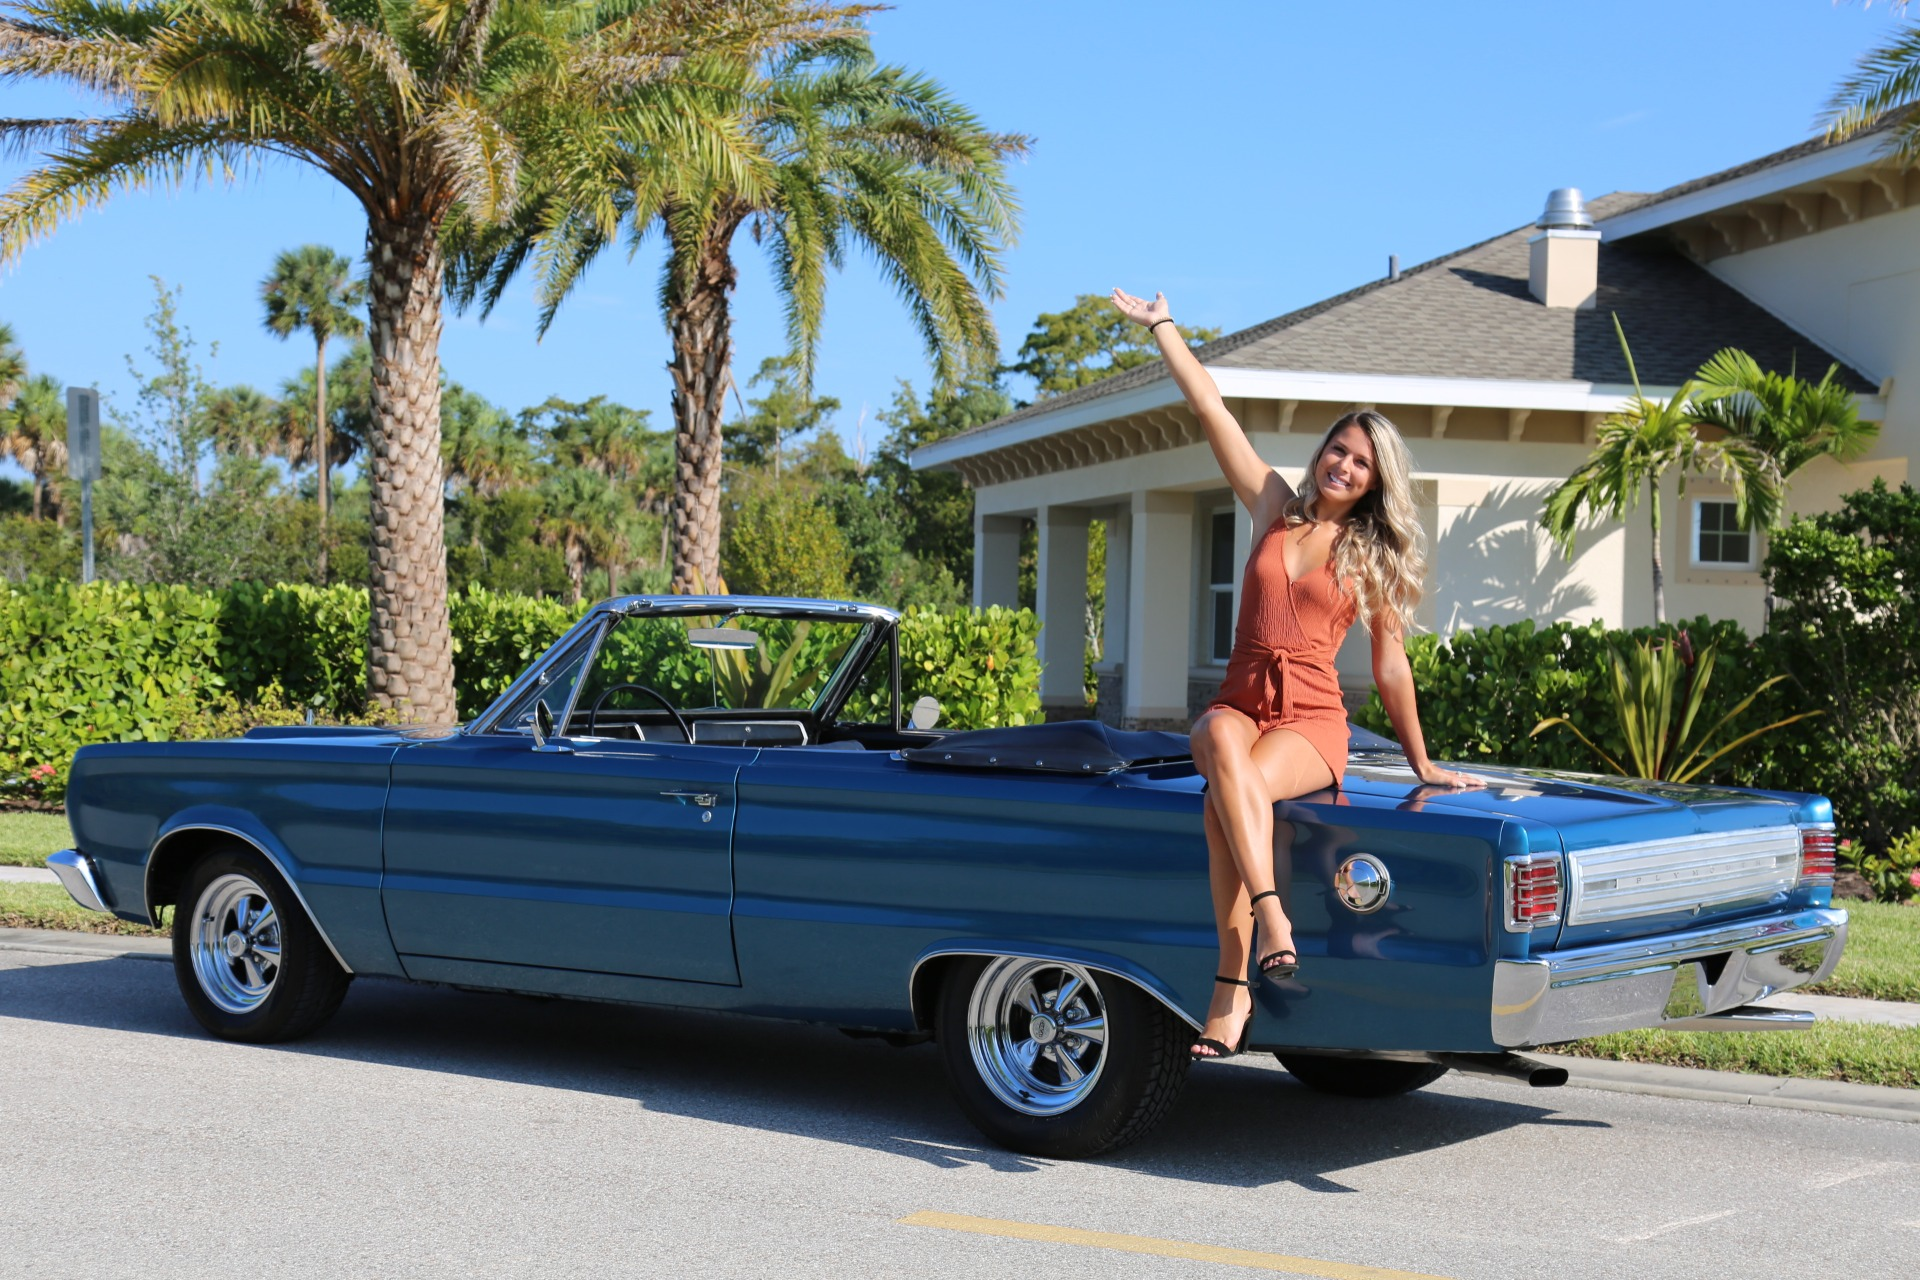 Used 1966 Plymouth Belvedere 383 V8 for sale Sold at Muscle Cars for Sale Inc. in Fort Myers FL 33912 4